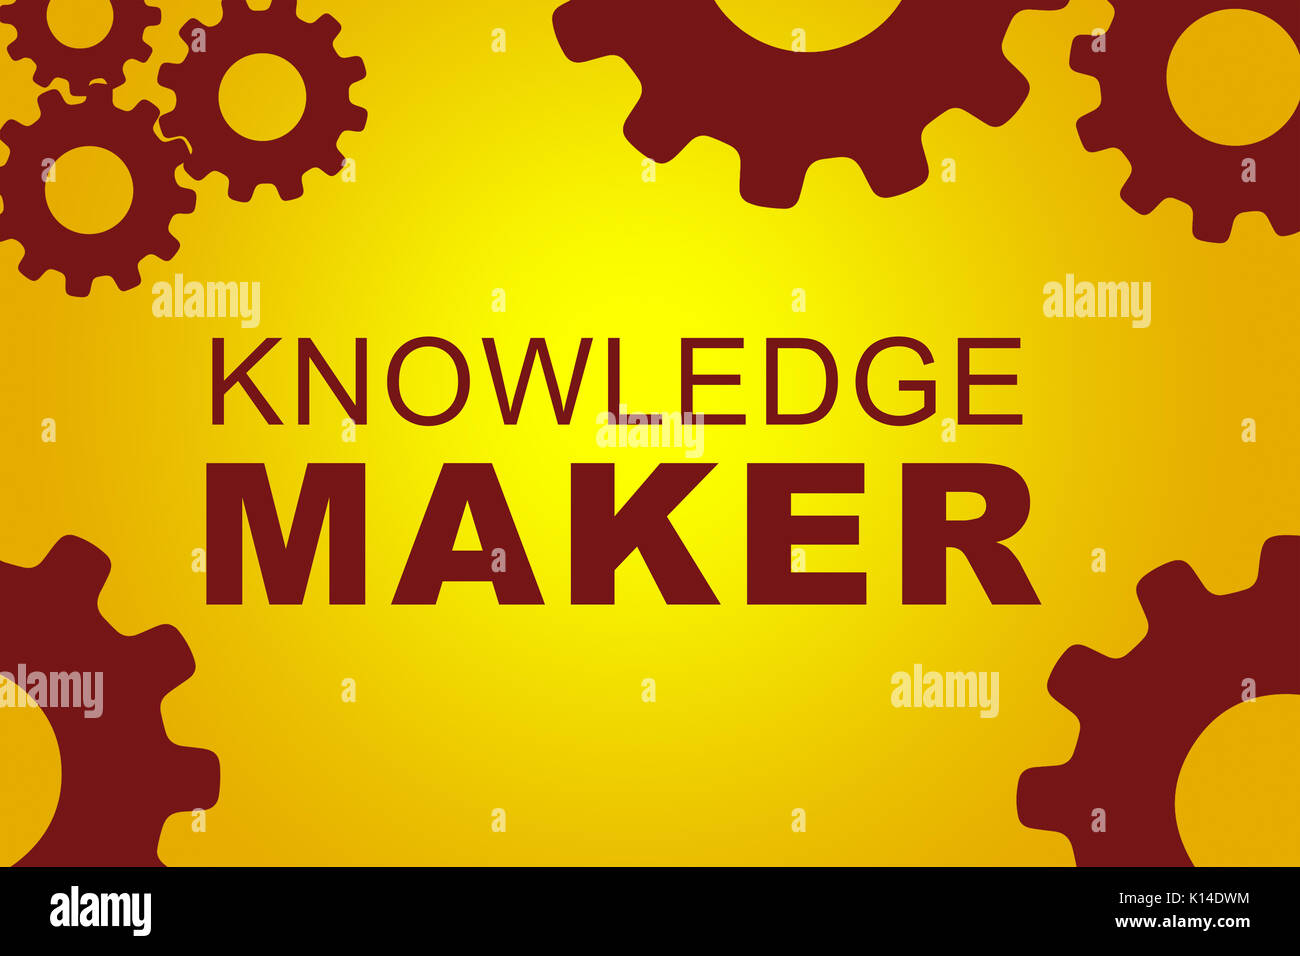 Education Concept Circuit Board School Stock Photos Maker Images Of Knowledge Sign Illustration With Red Gear Wheel Figures On Yellow Background Image